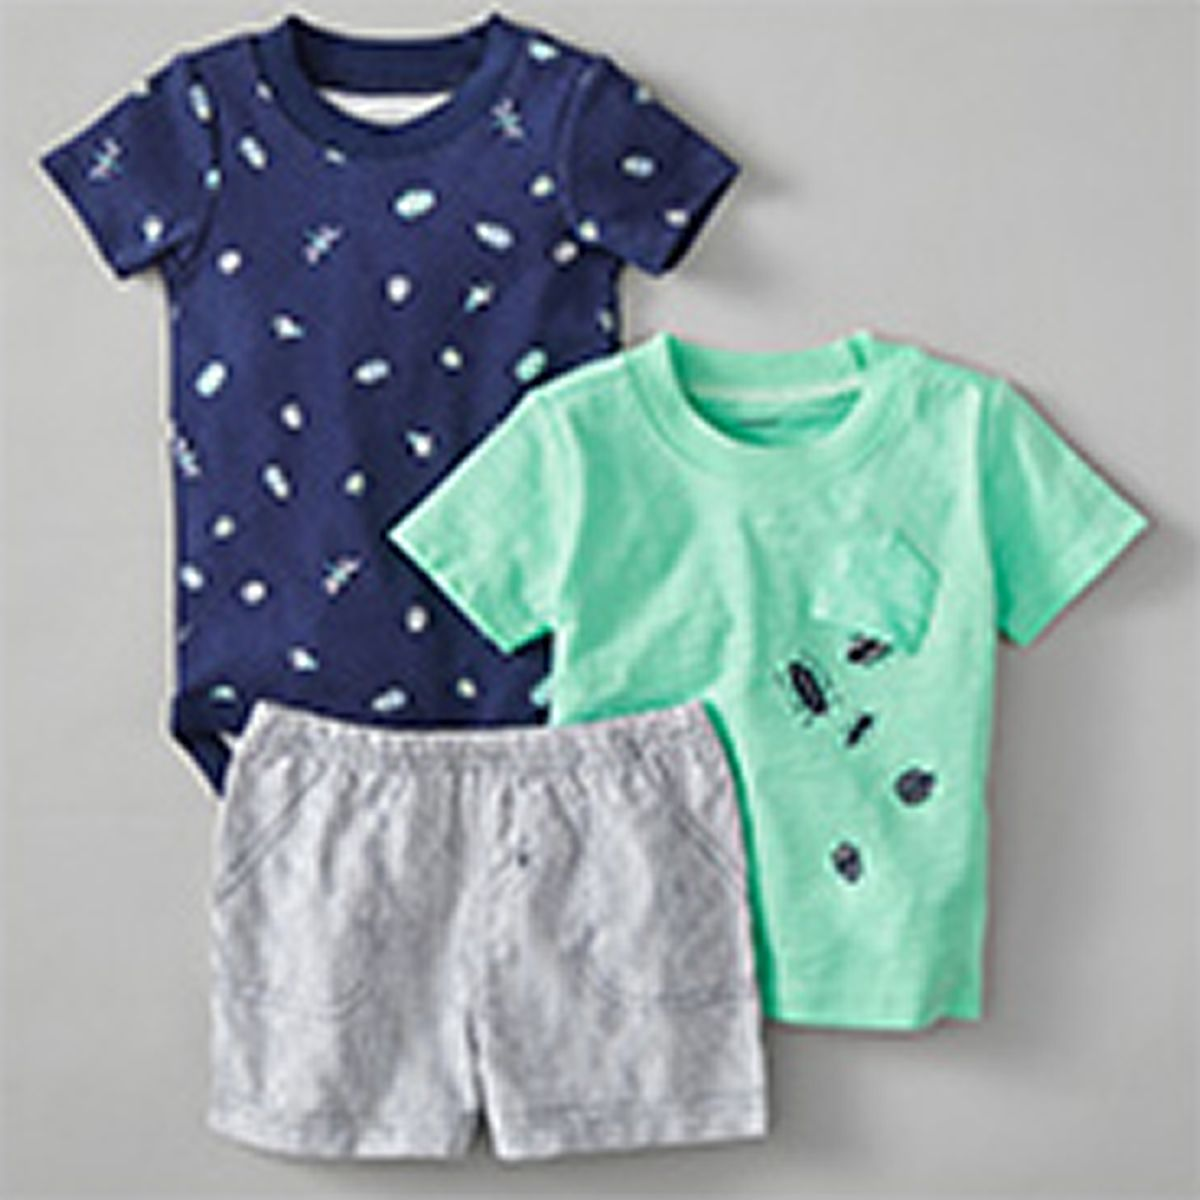 8dfd5df94 Newborn Clothes - Macy's